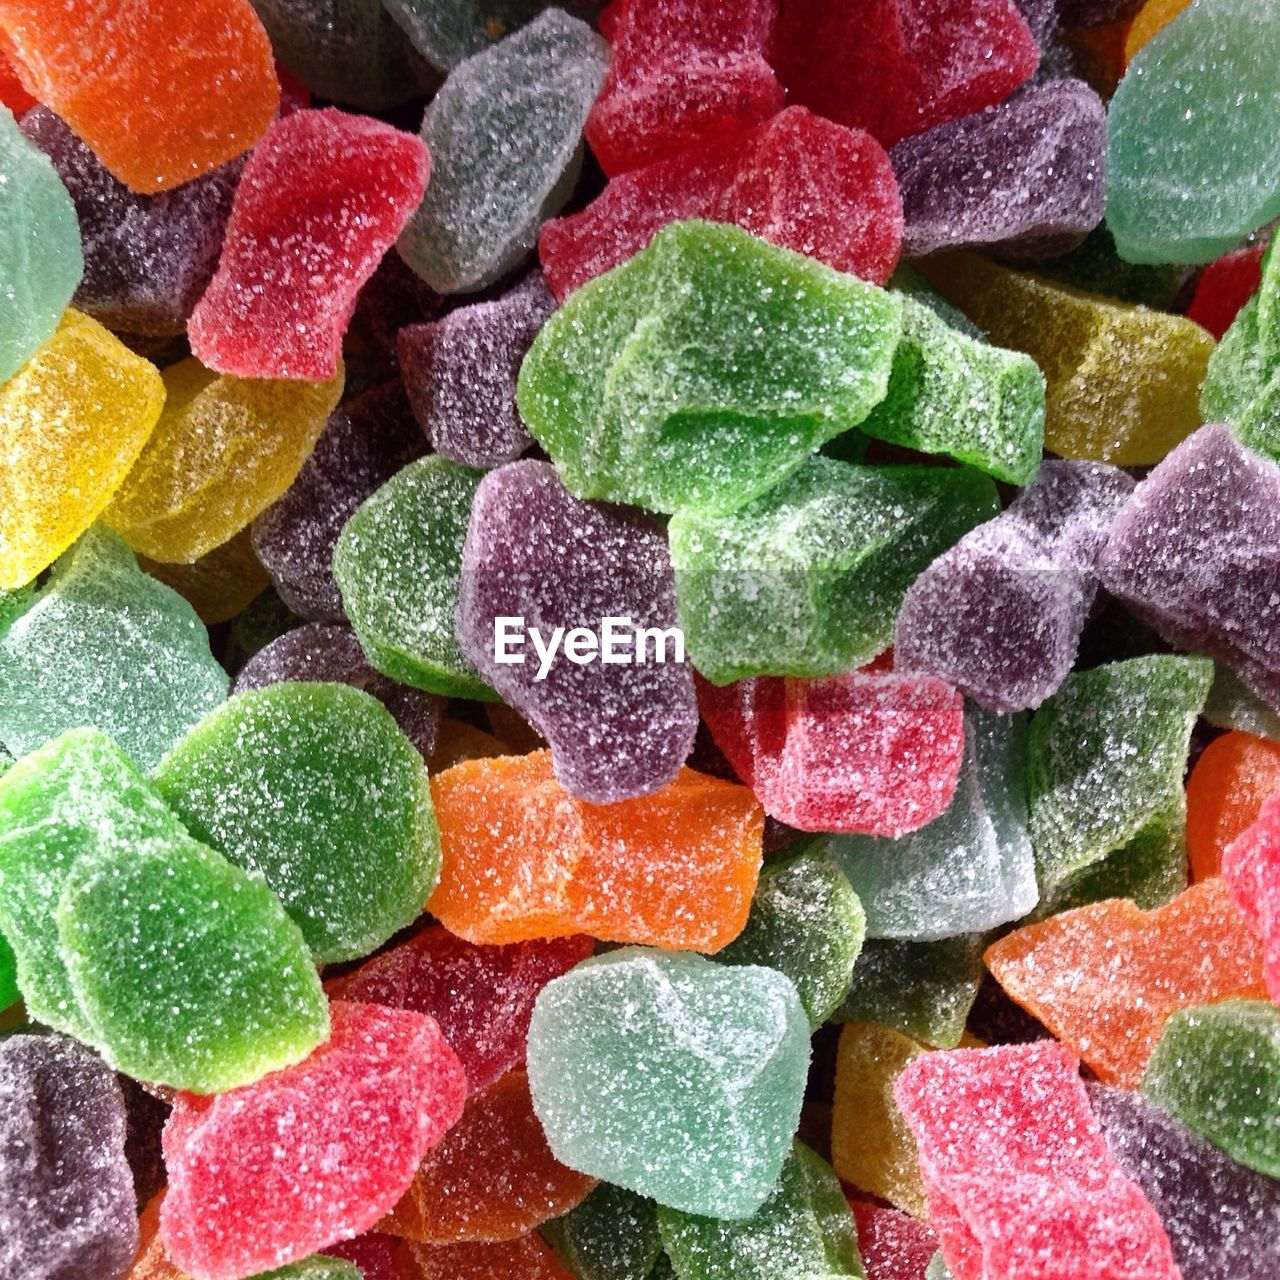 Full frame shot of colorful sugared candies